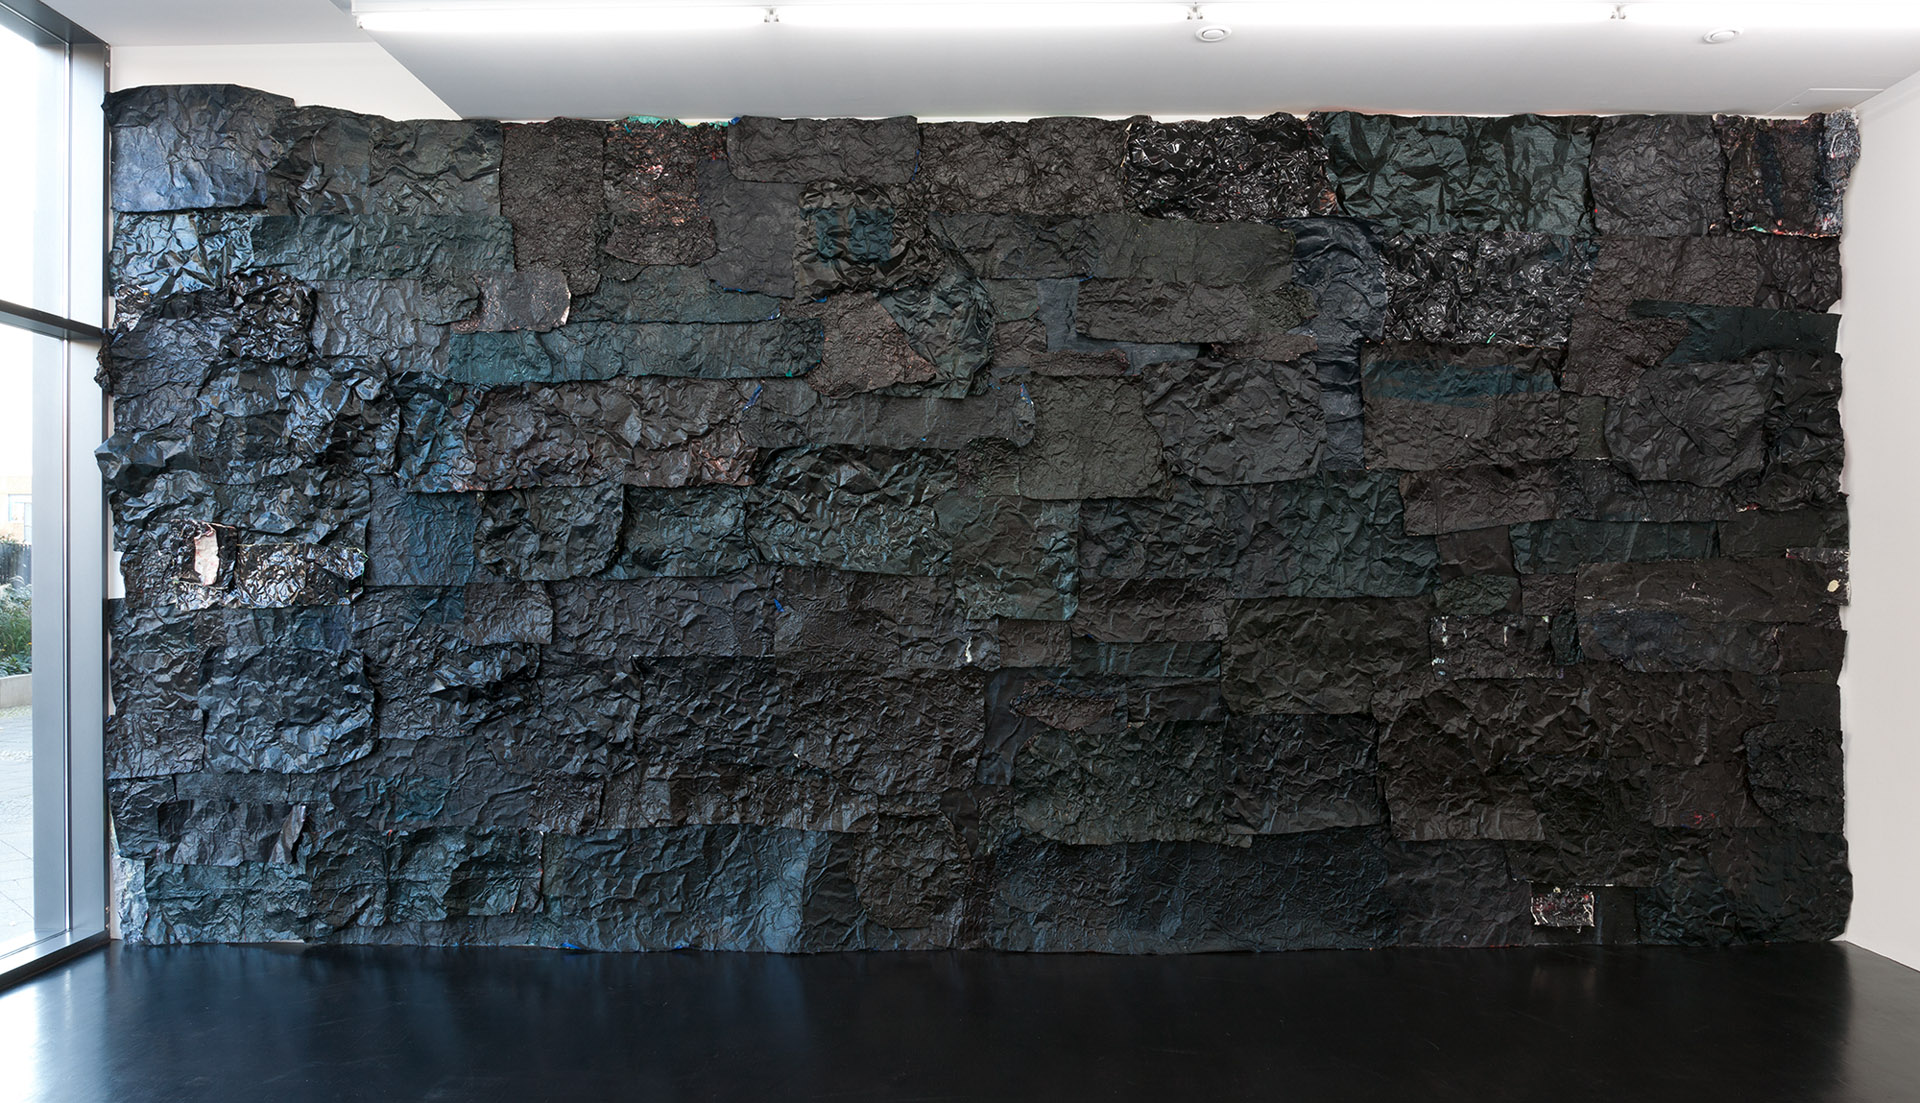 Angela Dwyer –Schotter's Nation, 2011, oil and lacquer on copper and aluminium, 400 x 800 cm